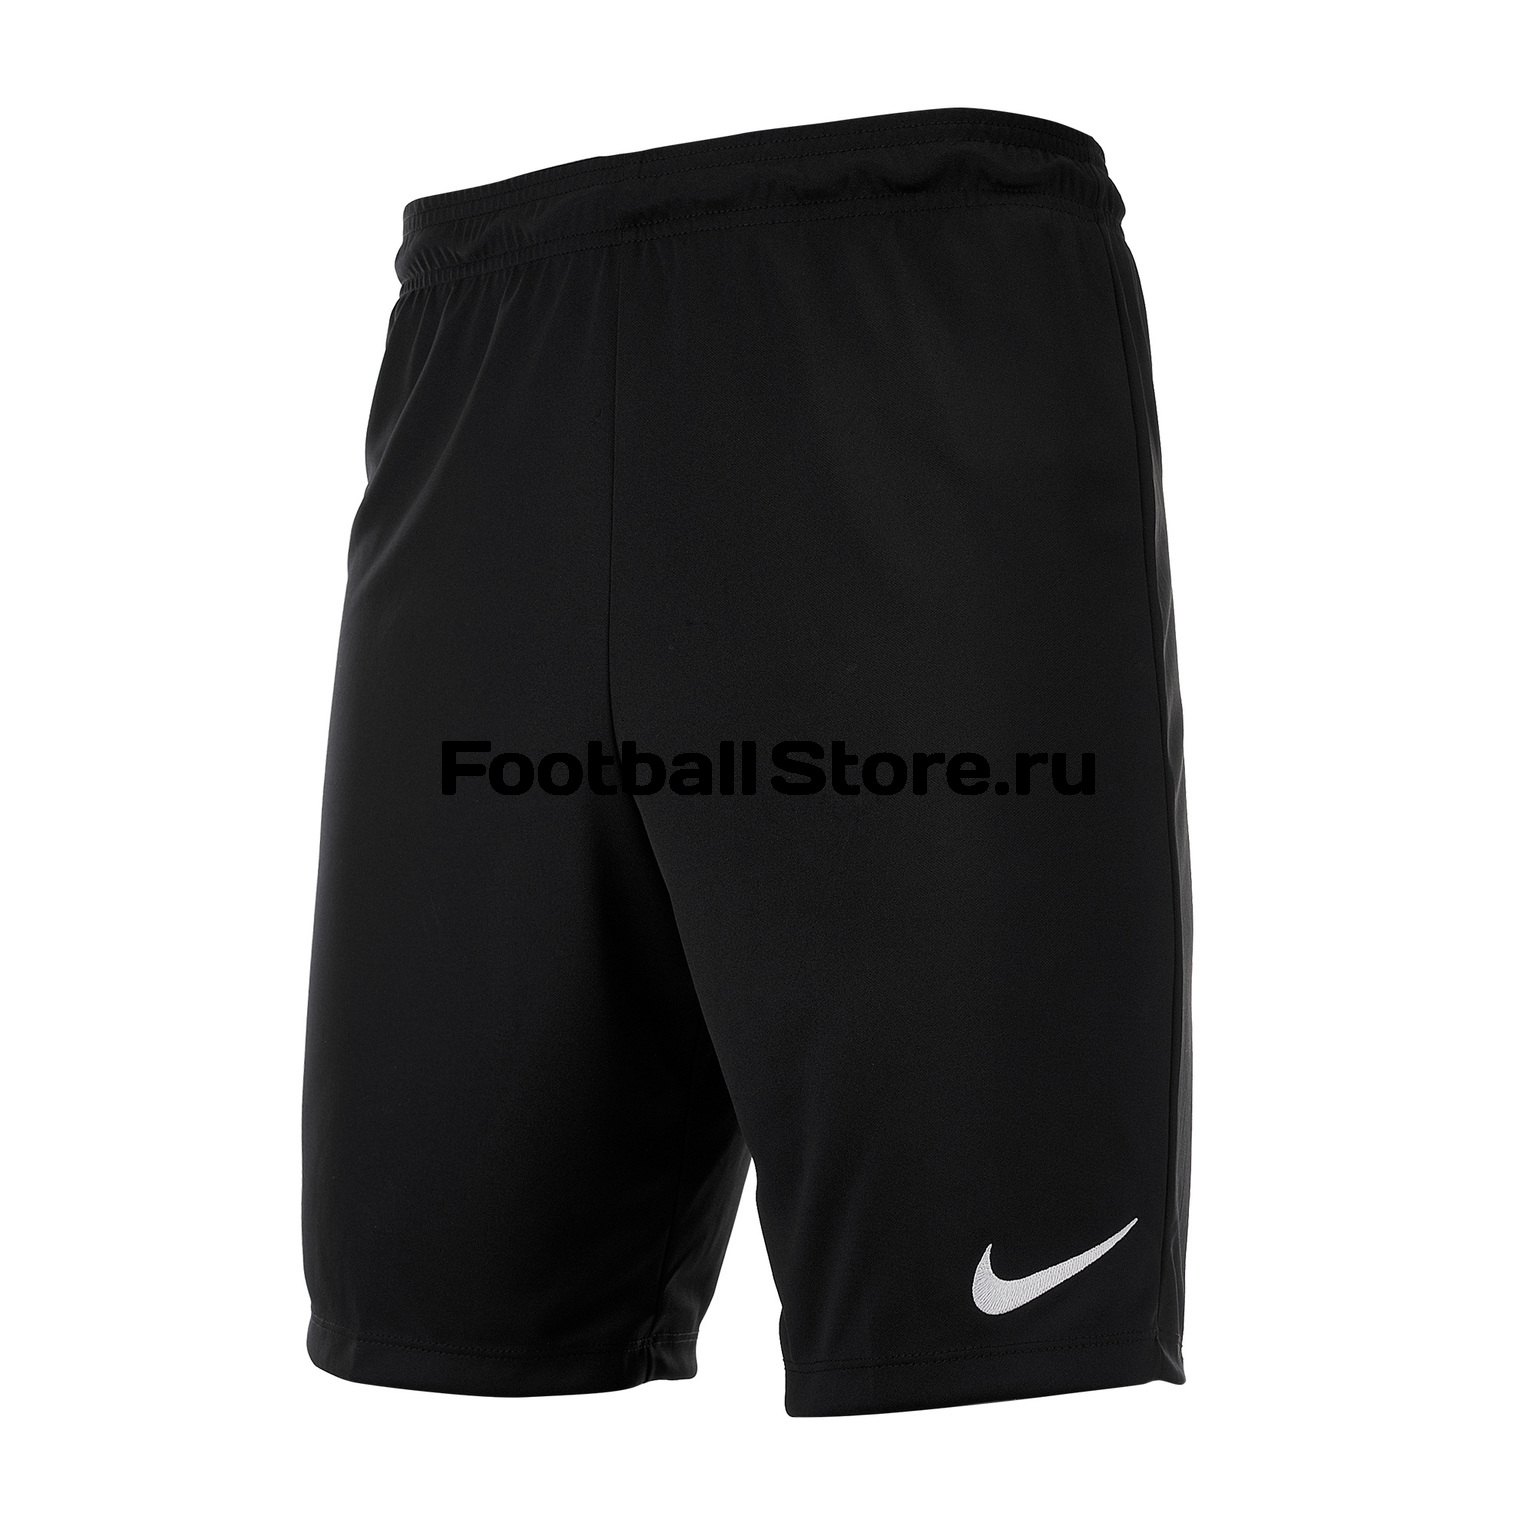 Шорты Nike Park II KNIT Short NB 725887-010 шорты nike park knit short wb 448222 739